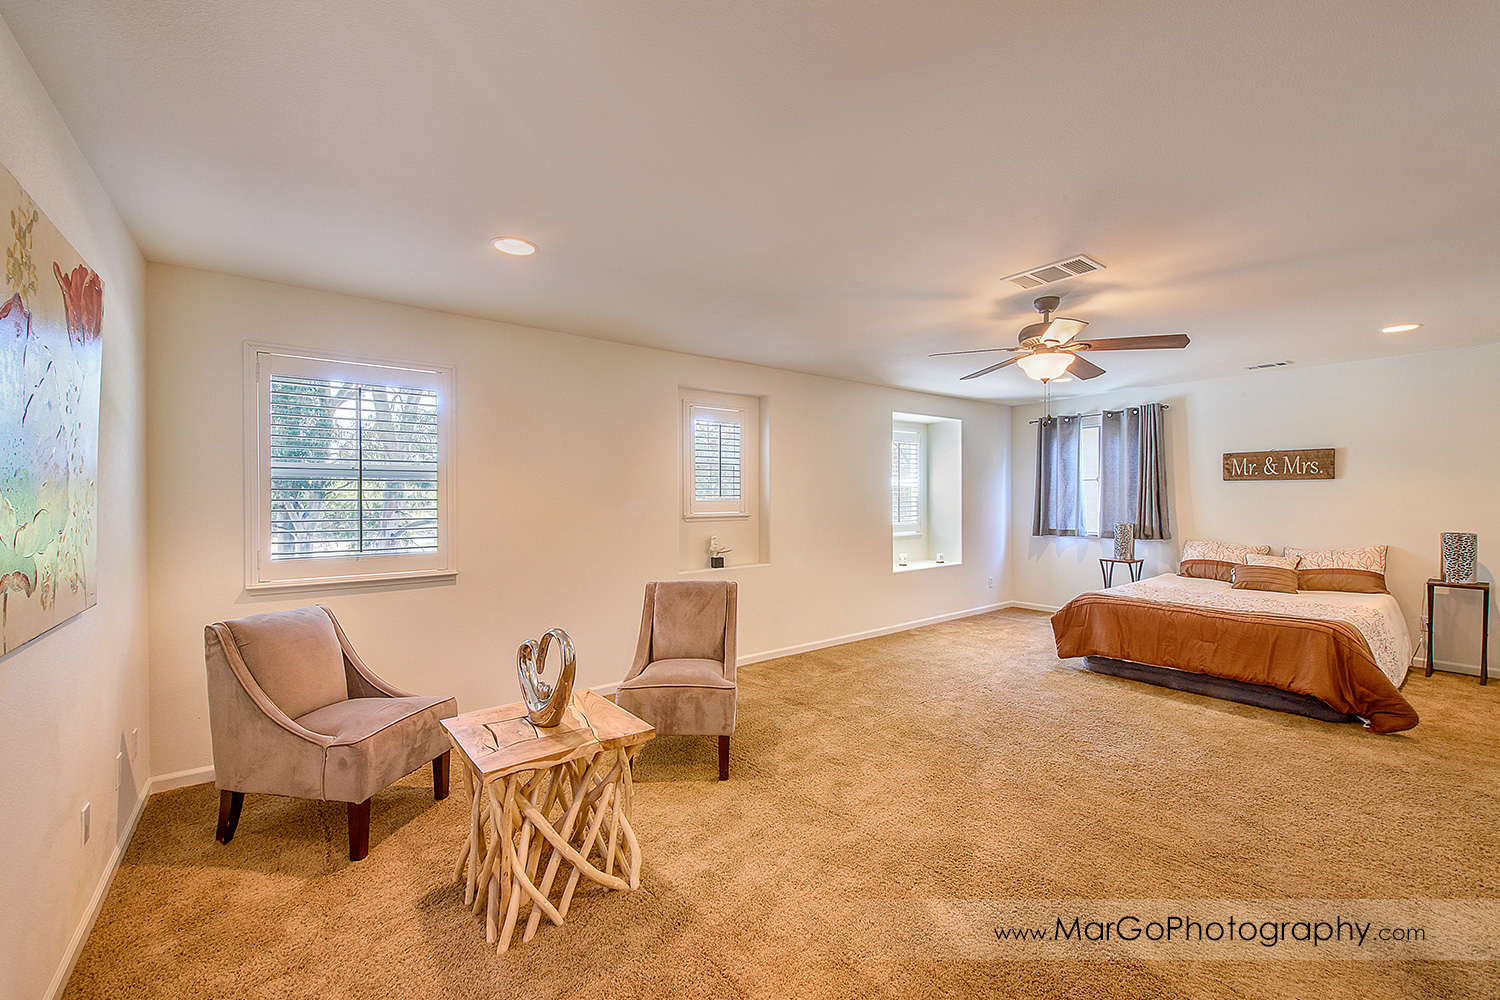 Pittsburd house upstairs master bedroom - real estate photography